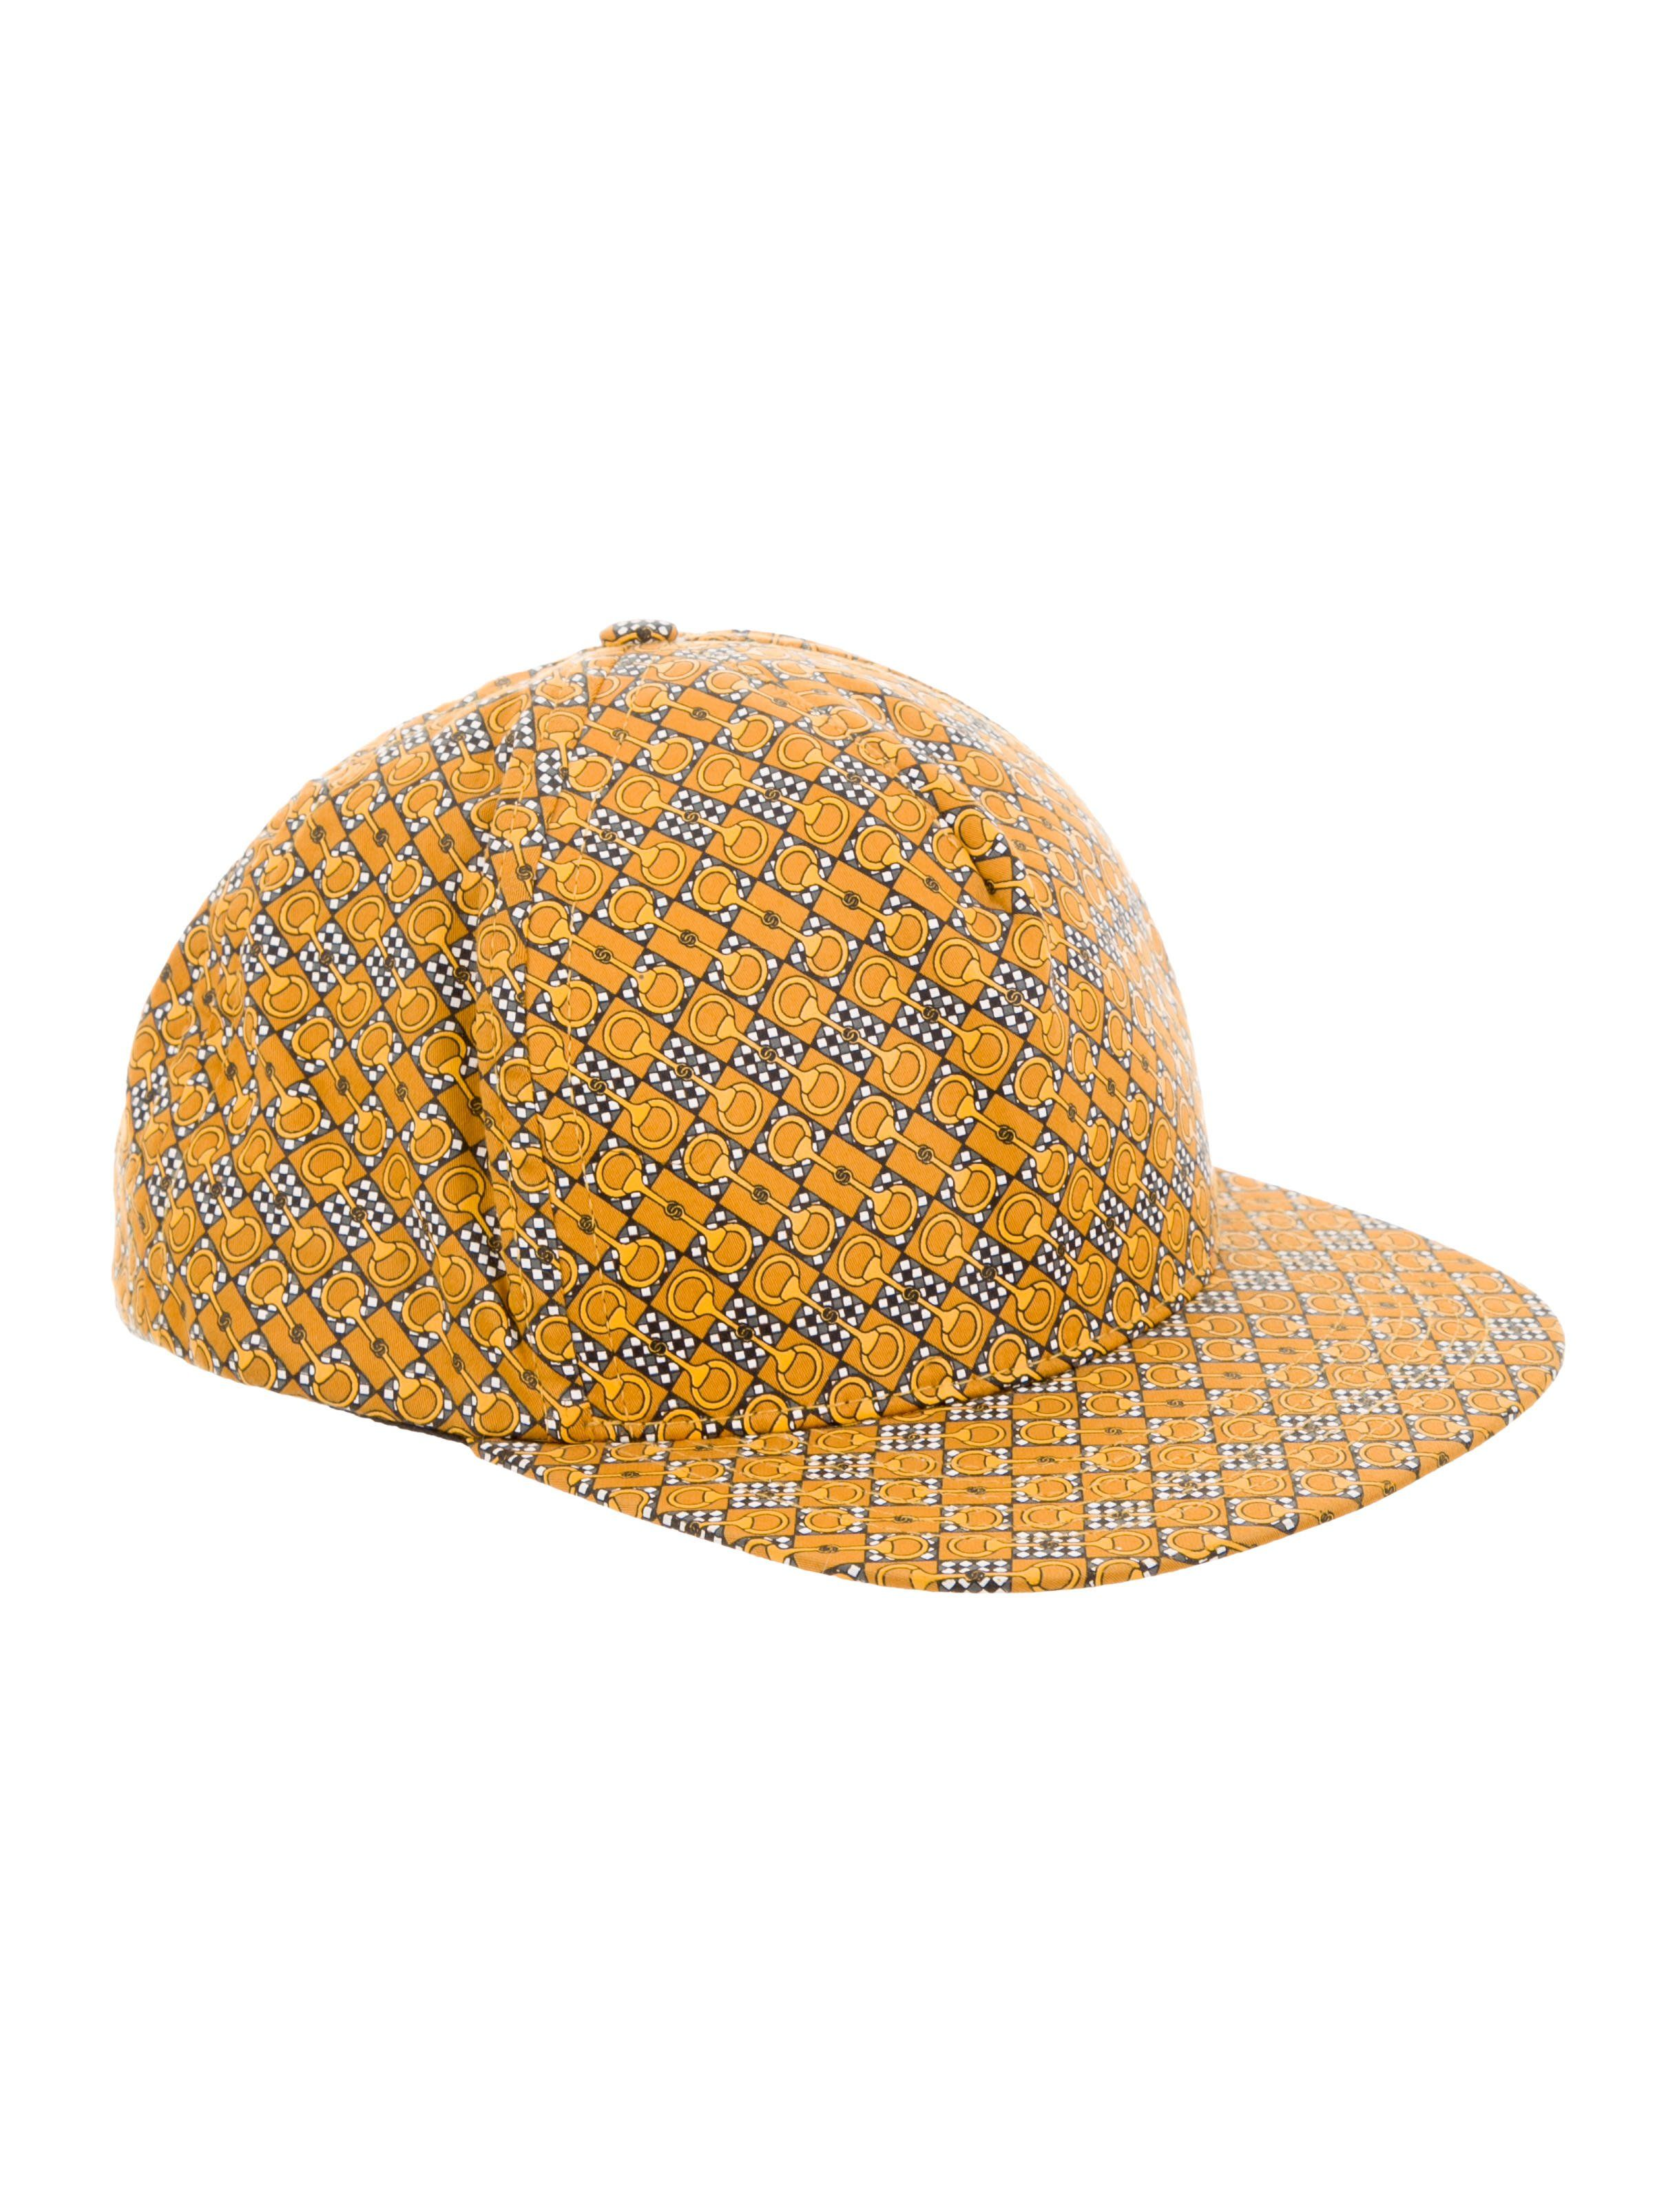 1efc0eb1 From the S/S 2012 Collection. Men's yellow Supreme woven snapback hat with  horsbit chain print throughout, tonal stitching and snap closures at ...